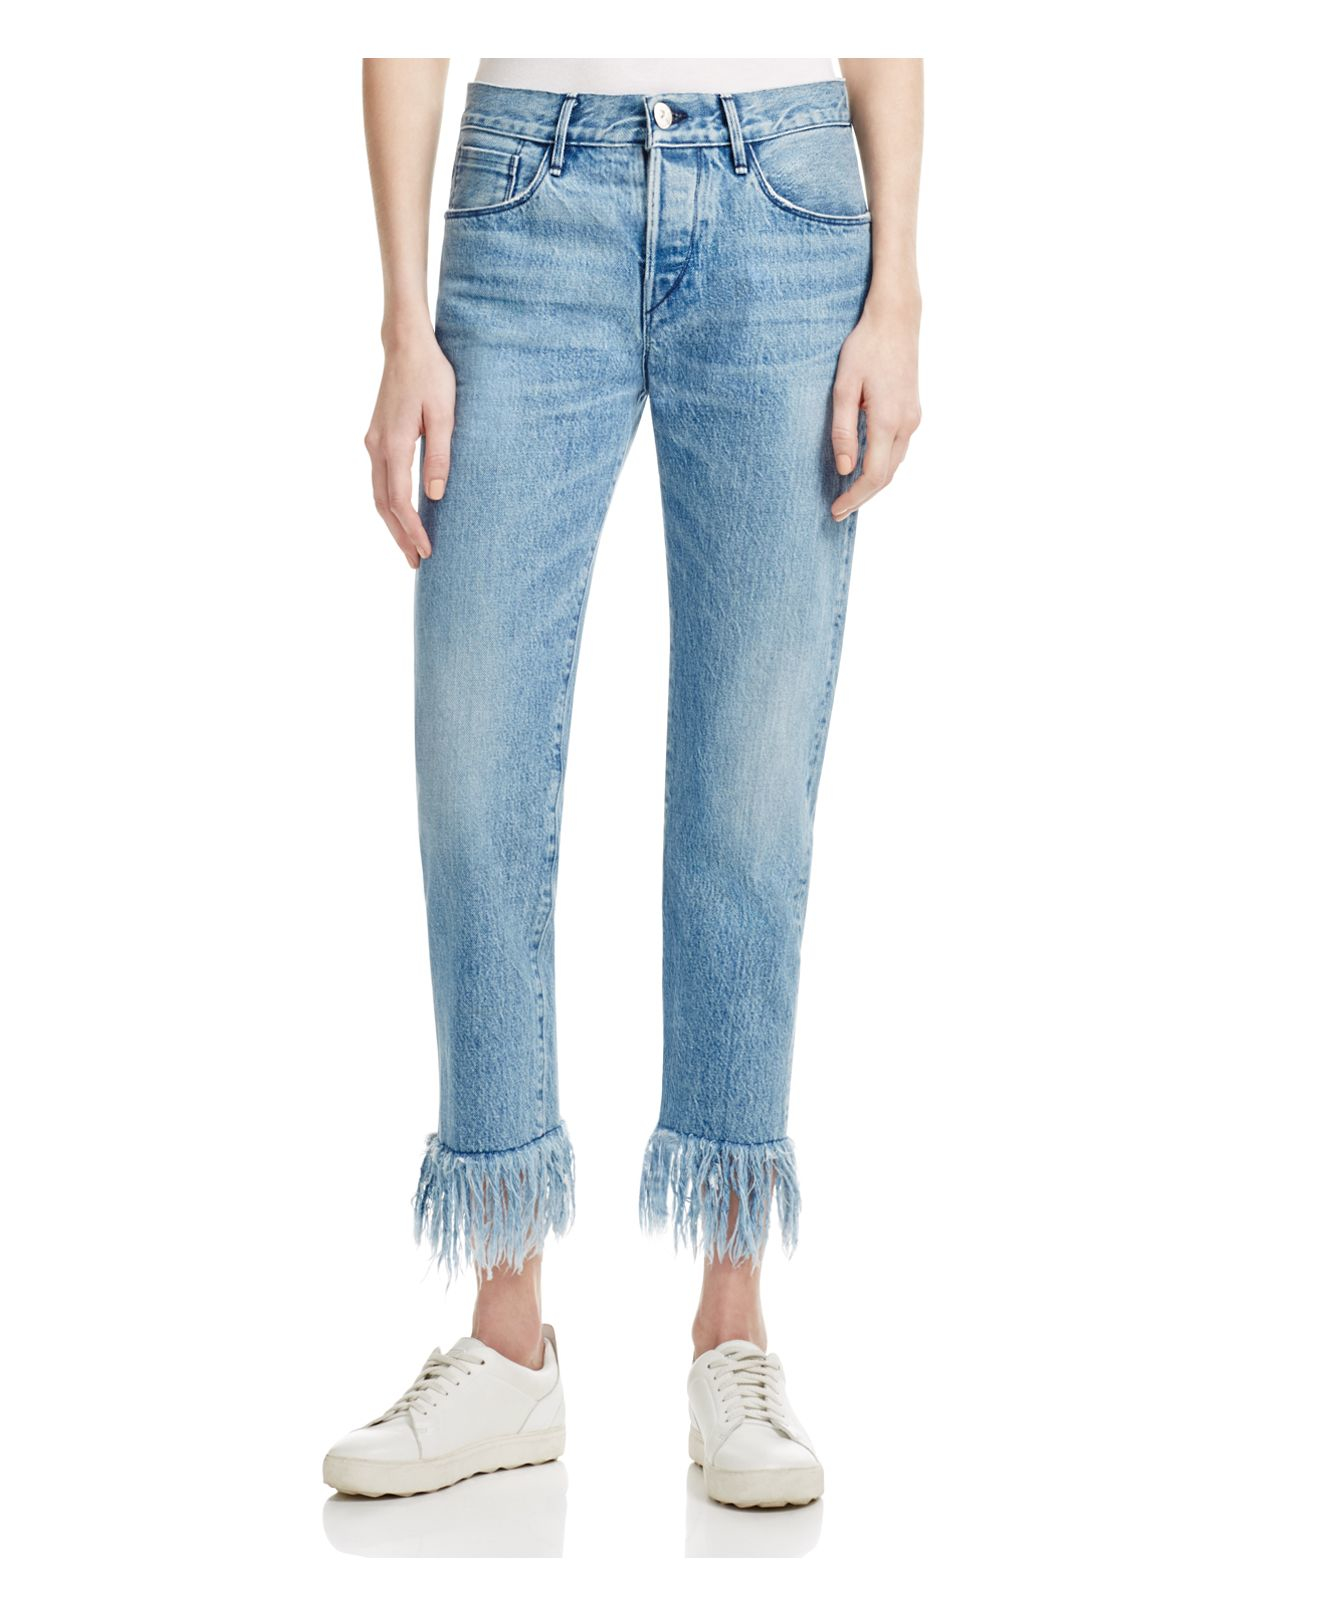 Lyst 3x1 Fringed Cropped High Waisted Jeans In Blue